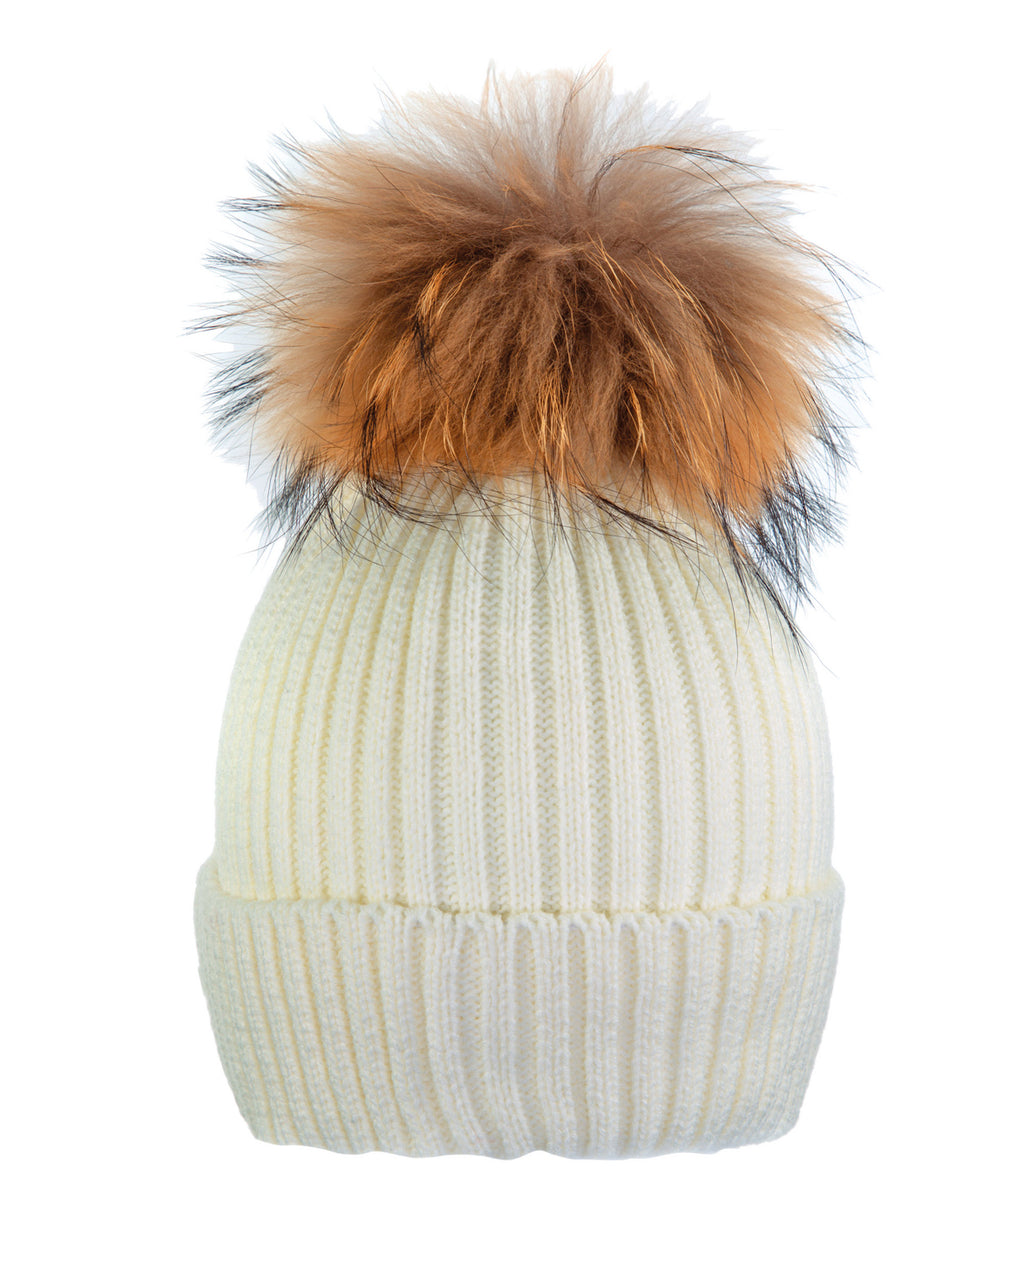 Cream White/Gold Beanie Hat With Exclusive Pom Pom